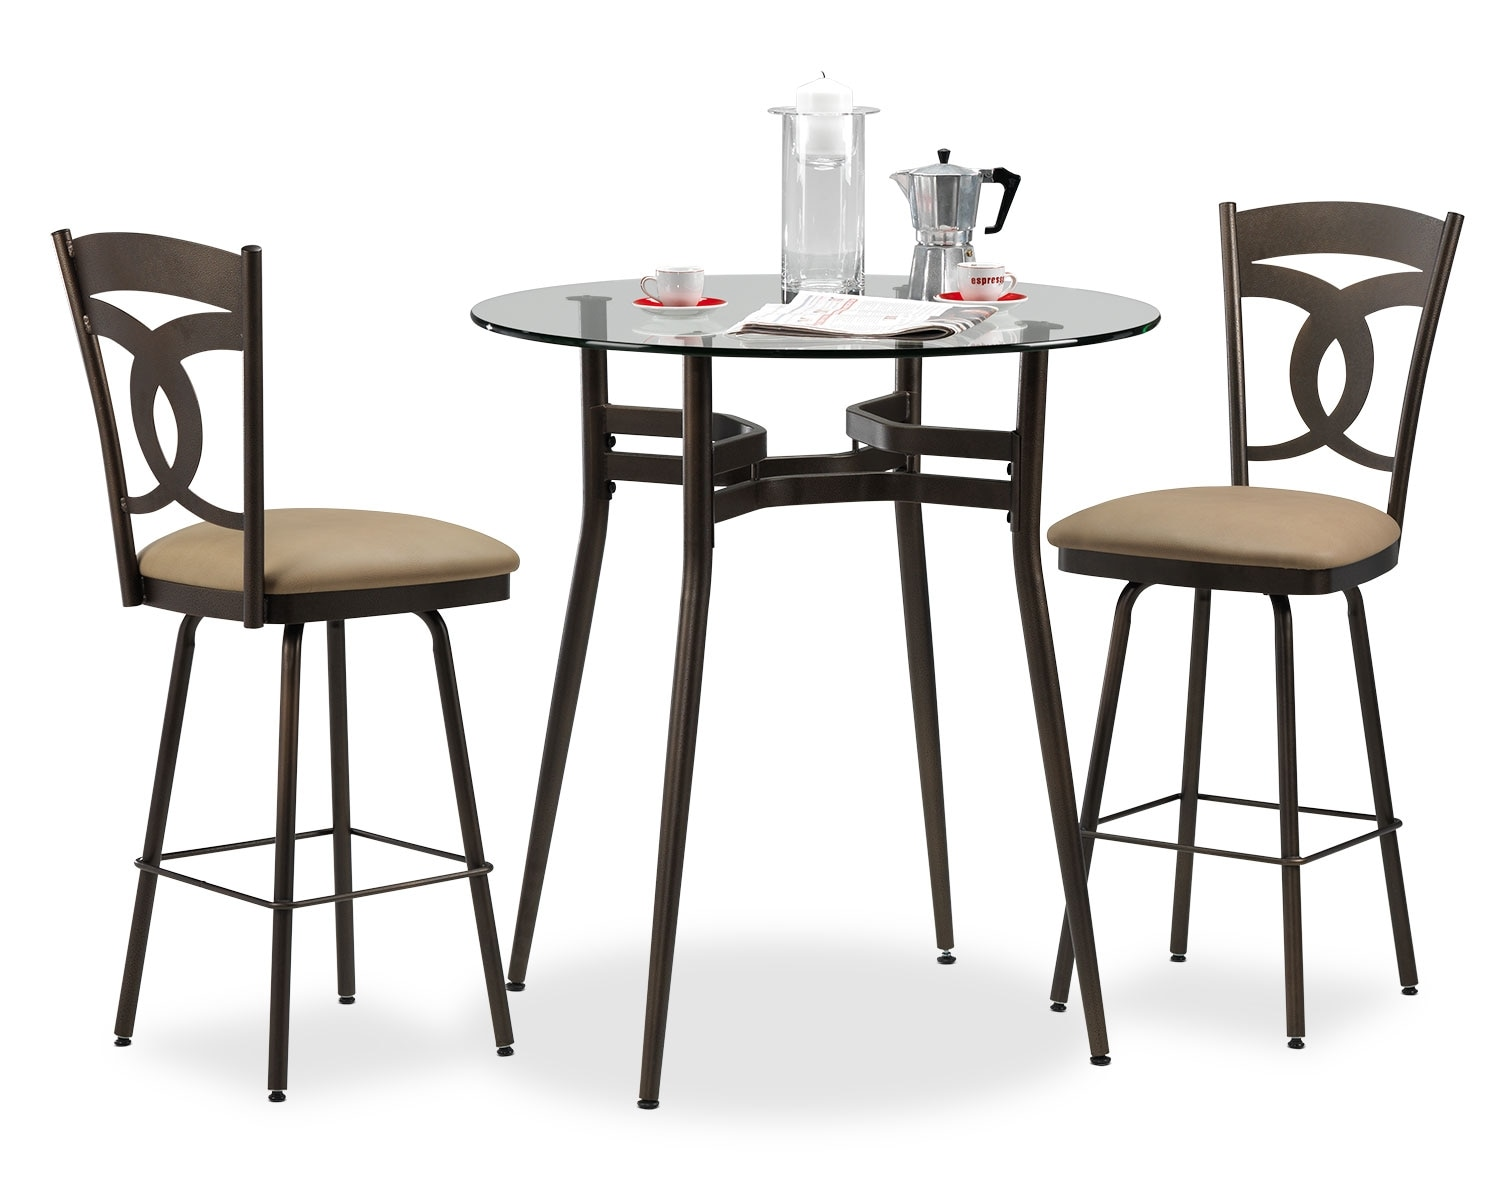 Casual Dining Room Furniture - Anais 3-Piece Dinette Set - Beige and Brown